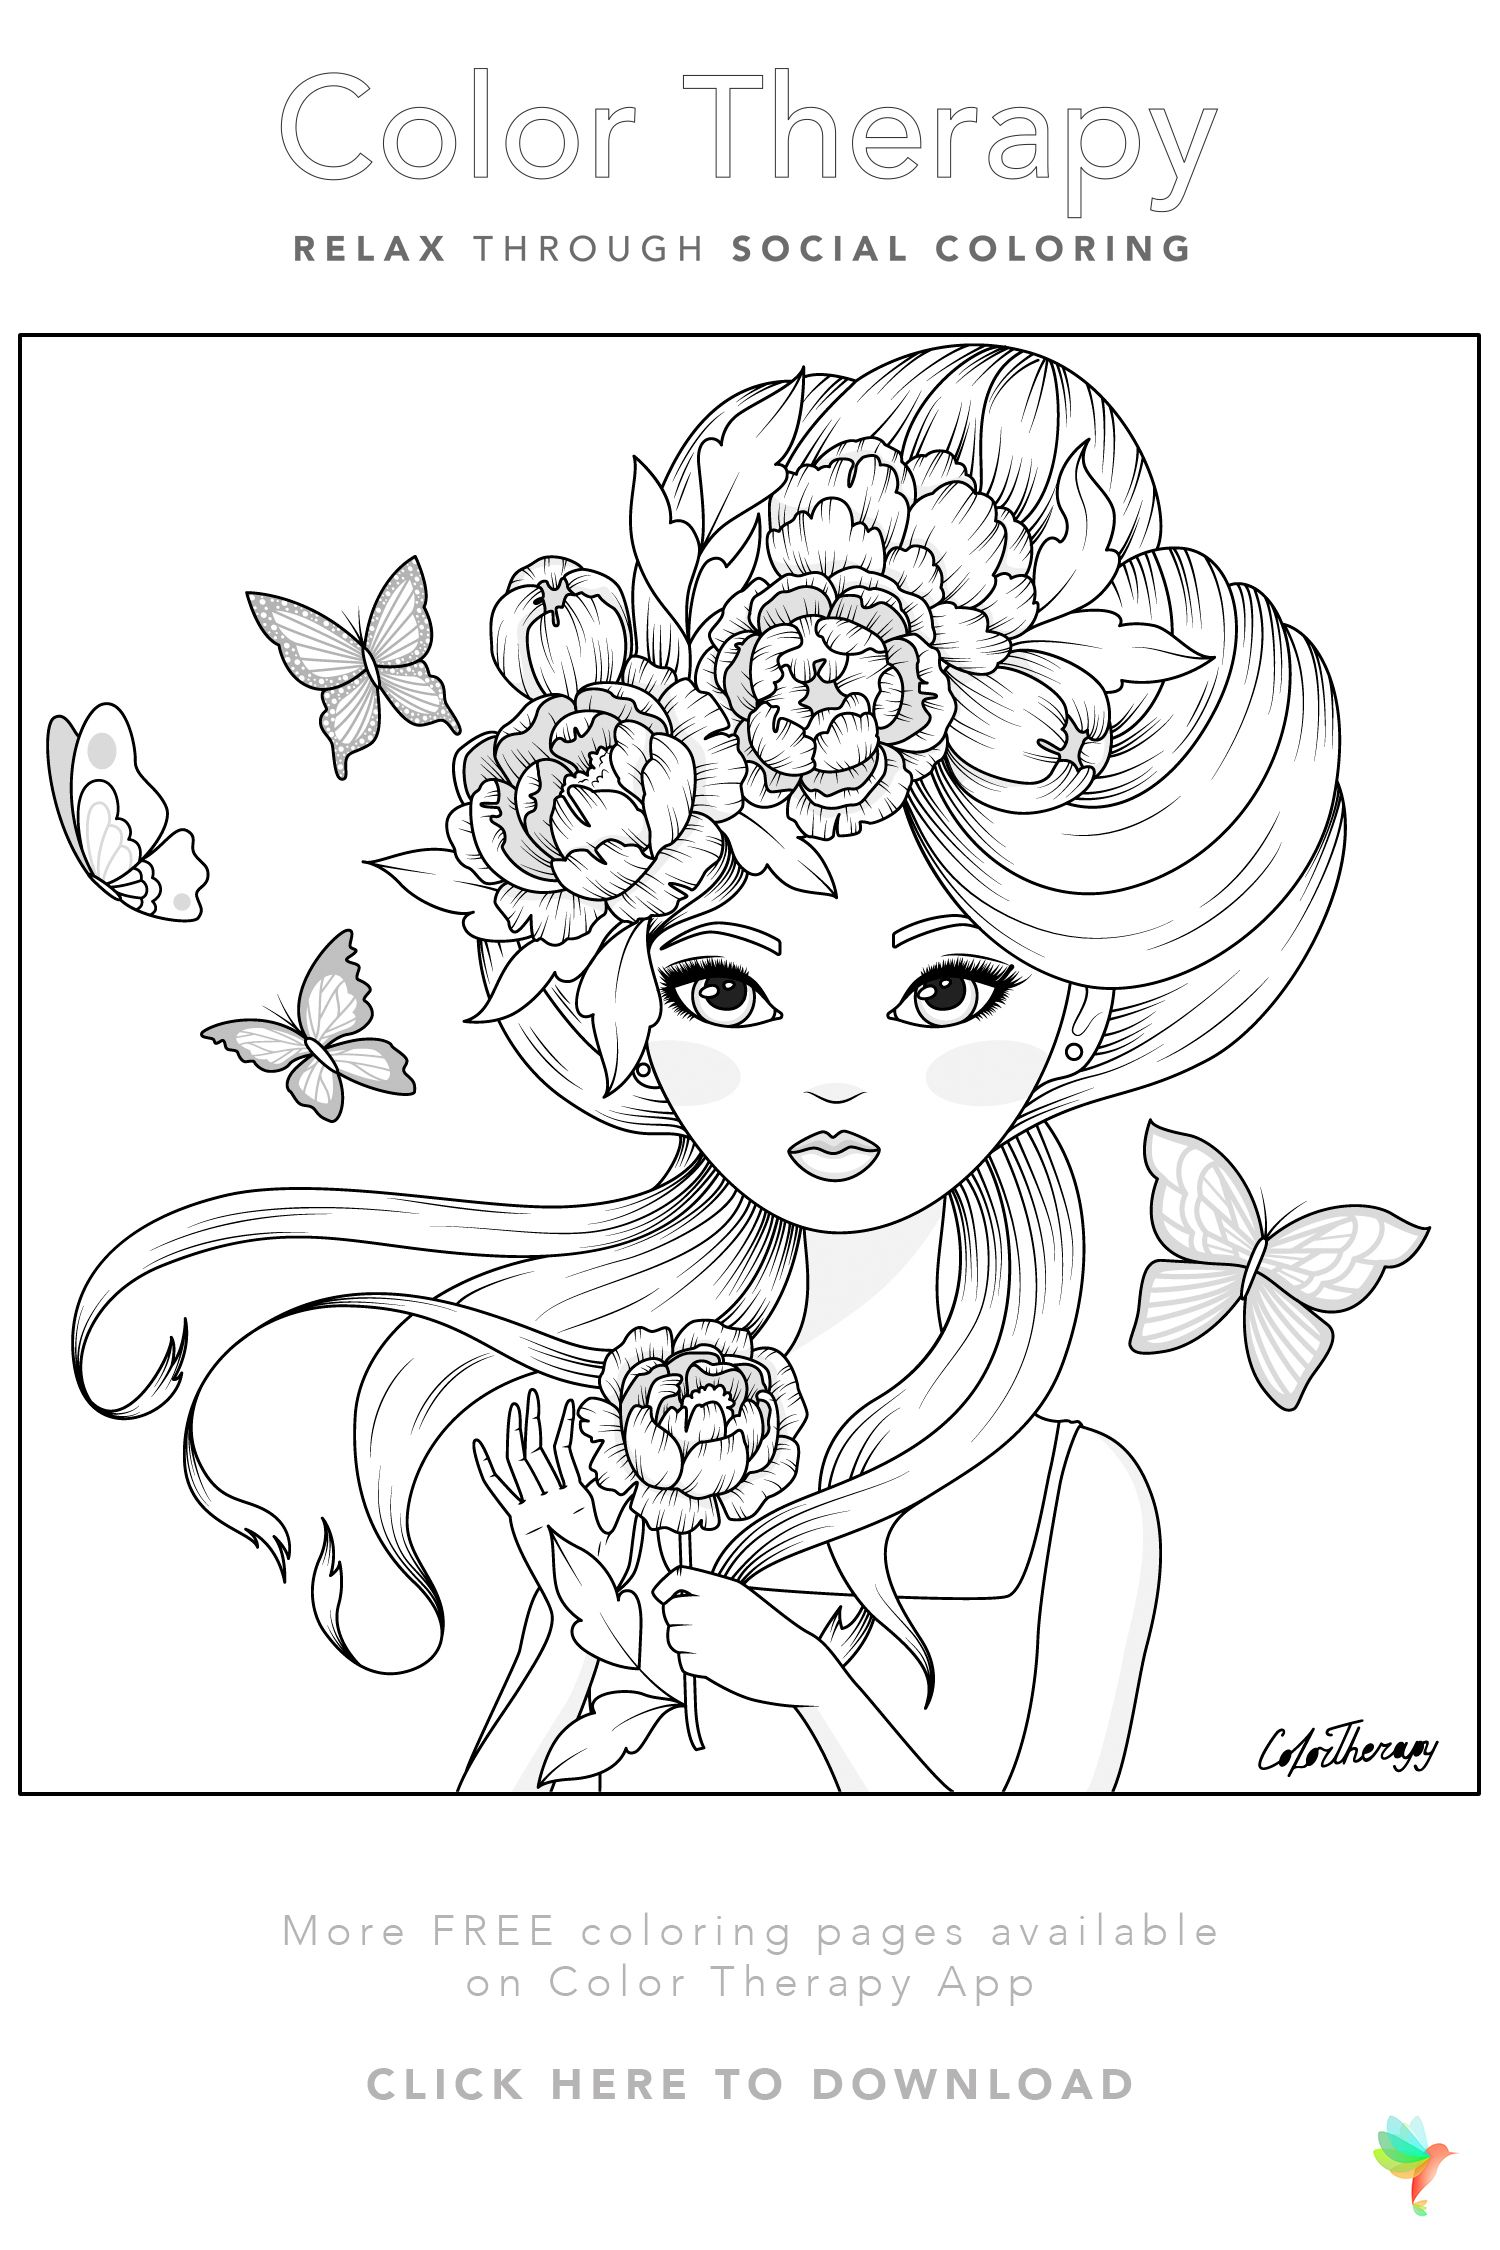 Color Therapy Gift Of The Day Free Coloring Template Moon Coloring Pages Coloring Book Art People Coloring Pages [ 2250 x 1500 Pixel ]